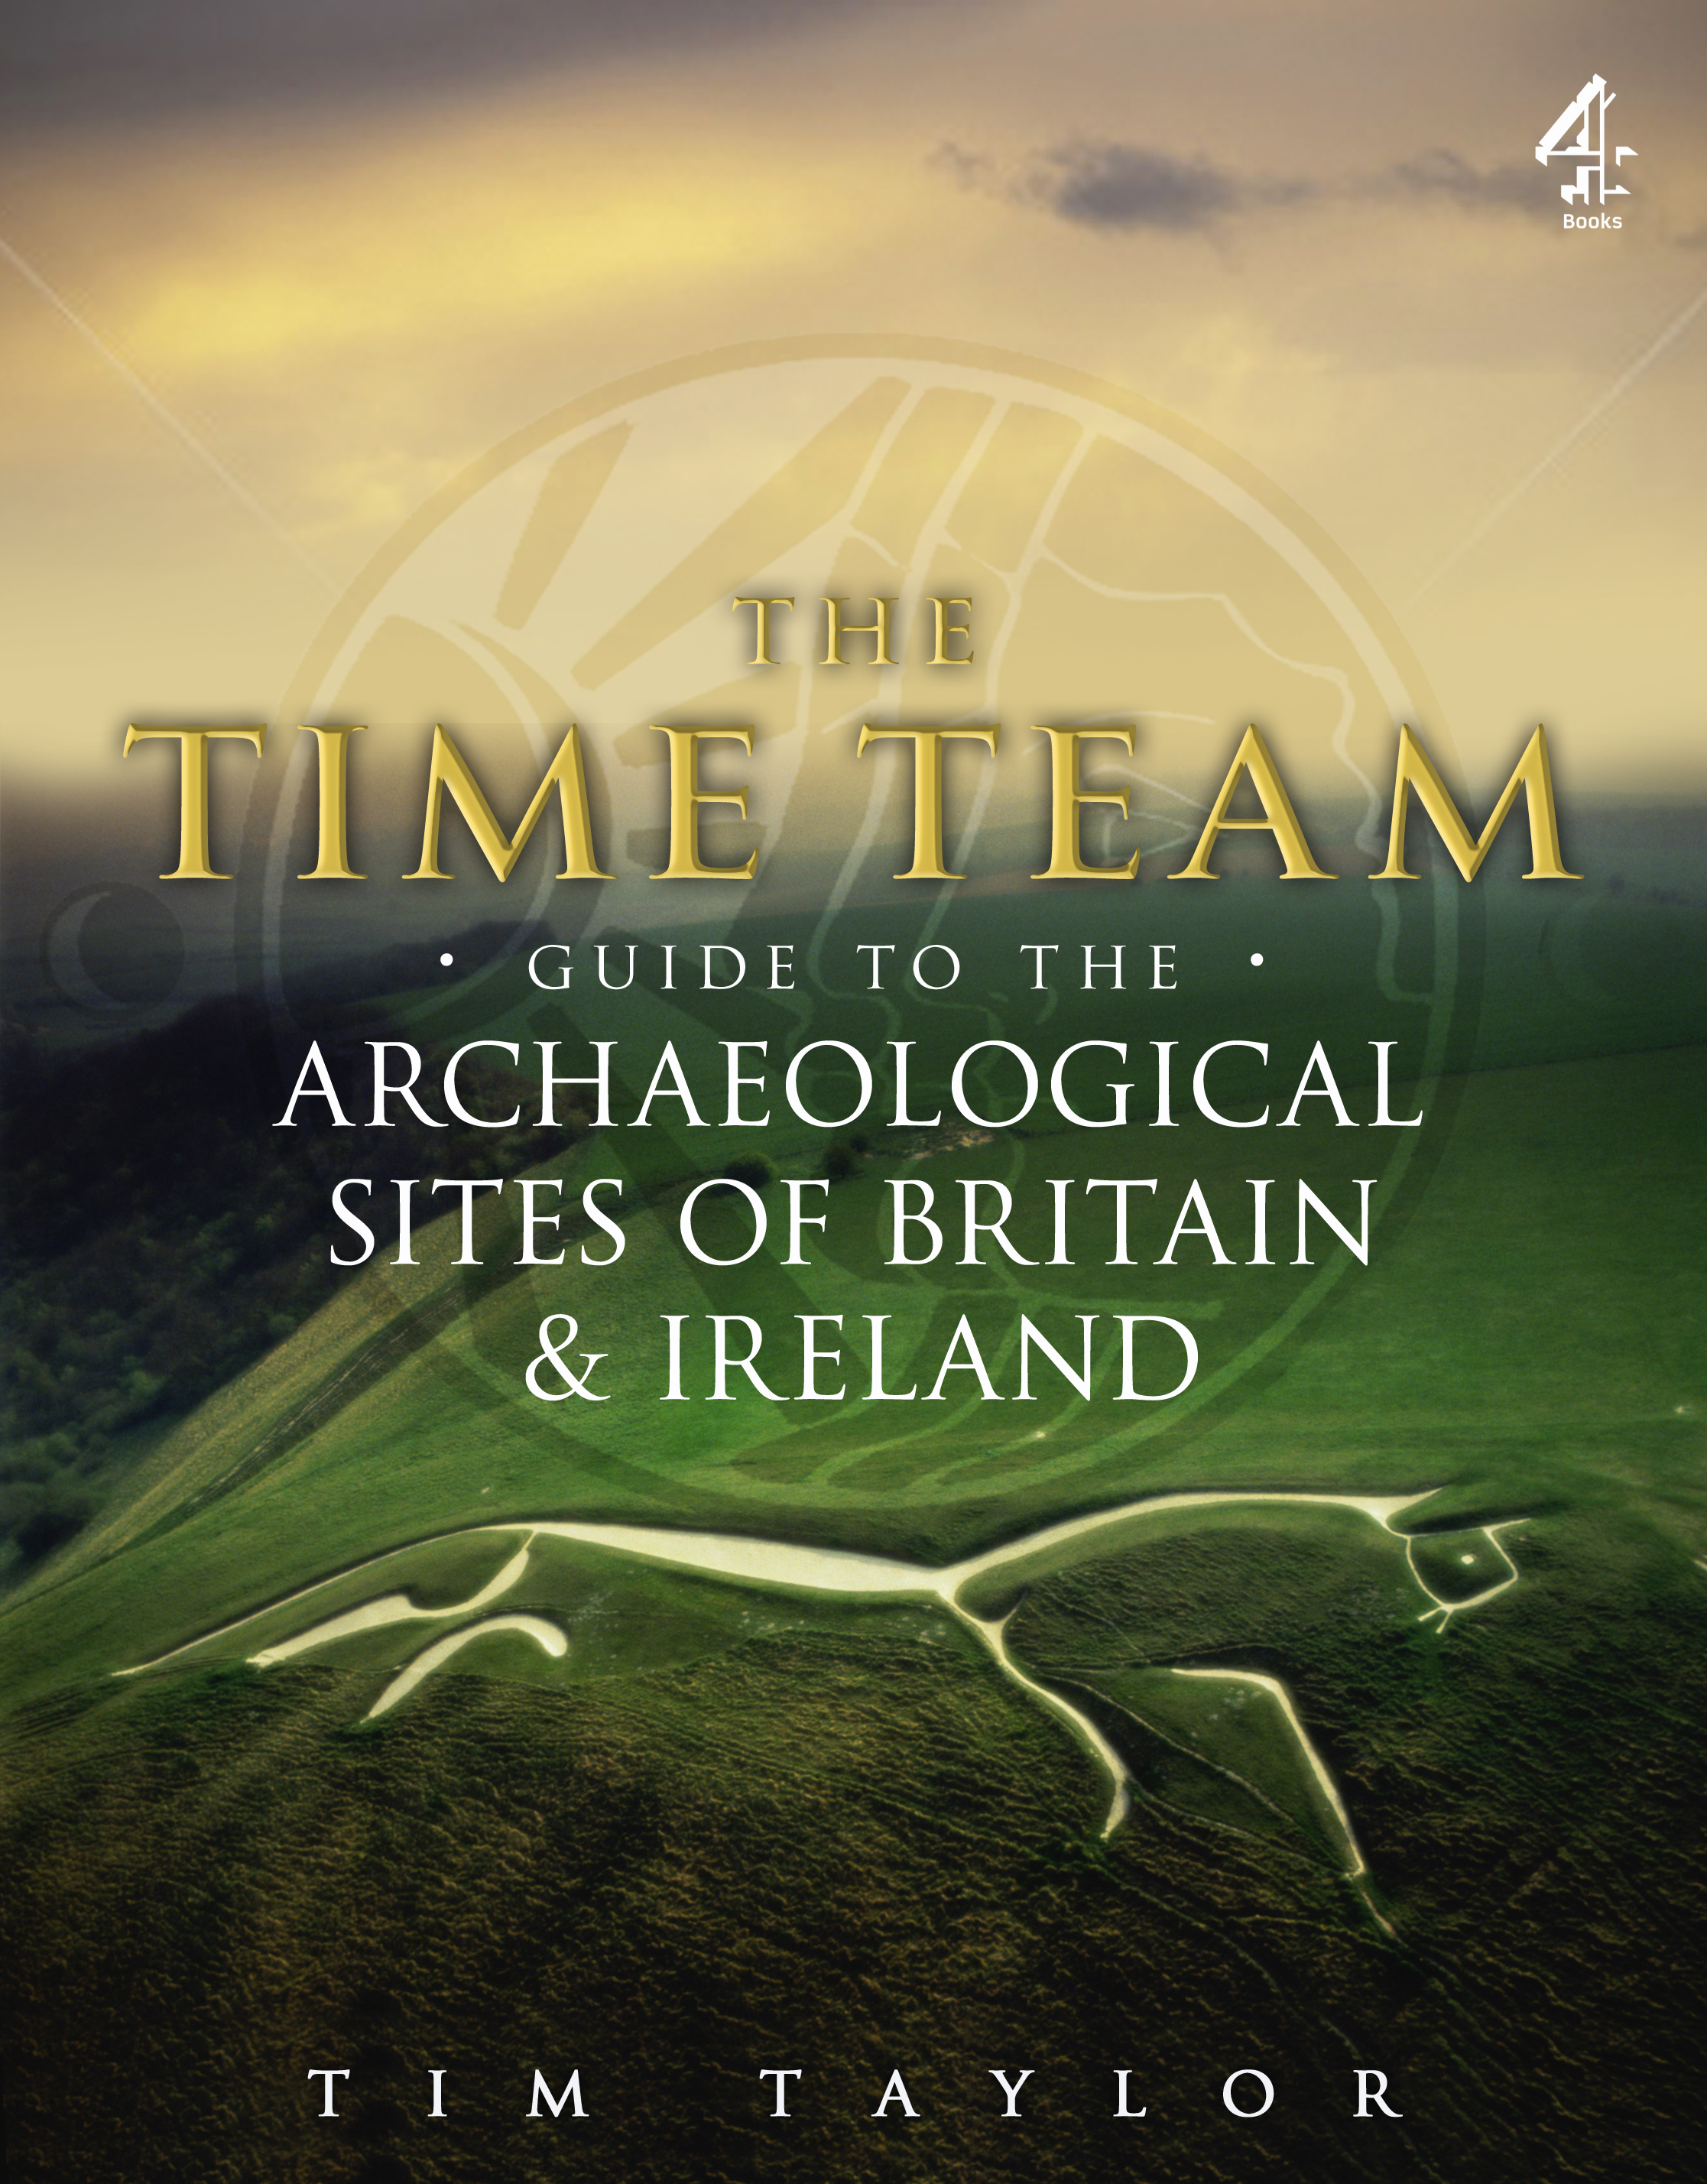 Time Team Guide To The Archaeological Sites Of Britain and Ireland